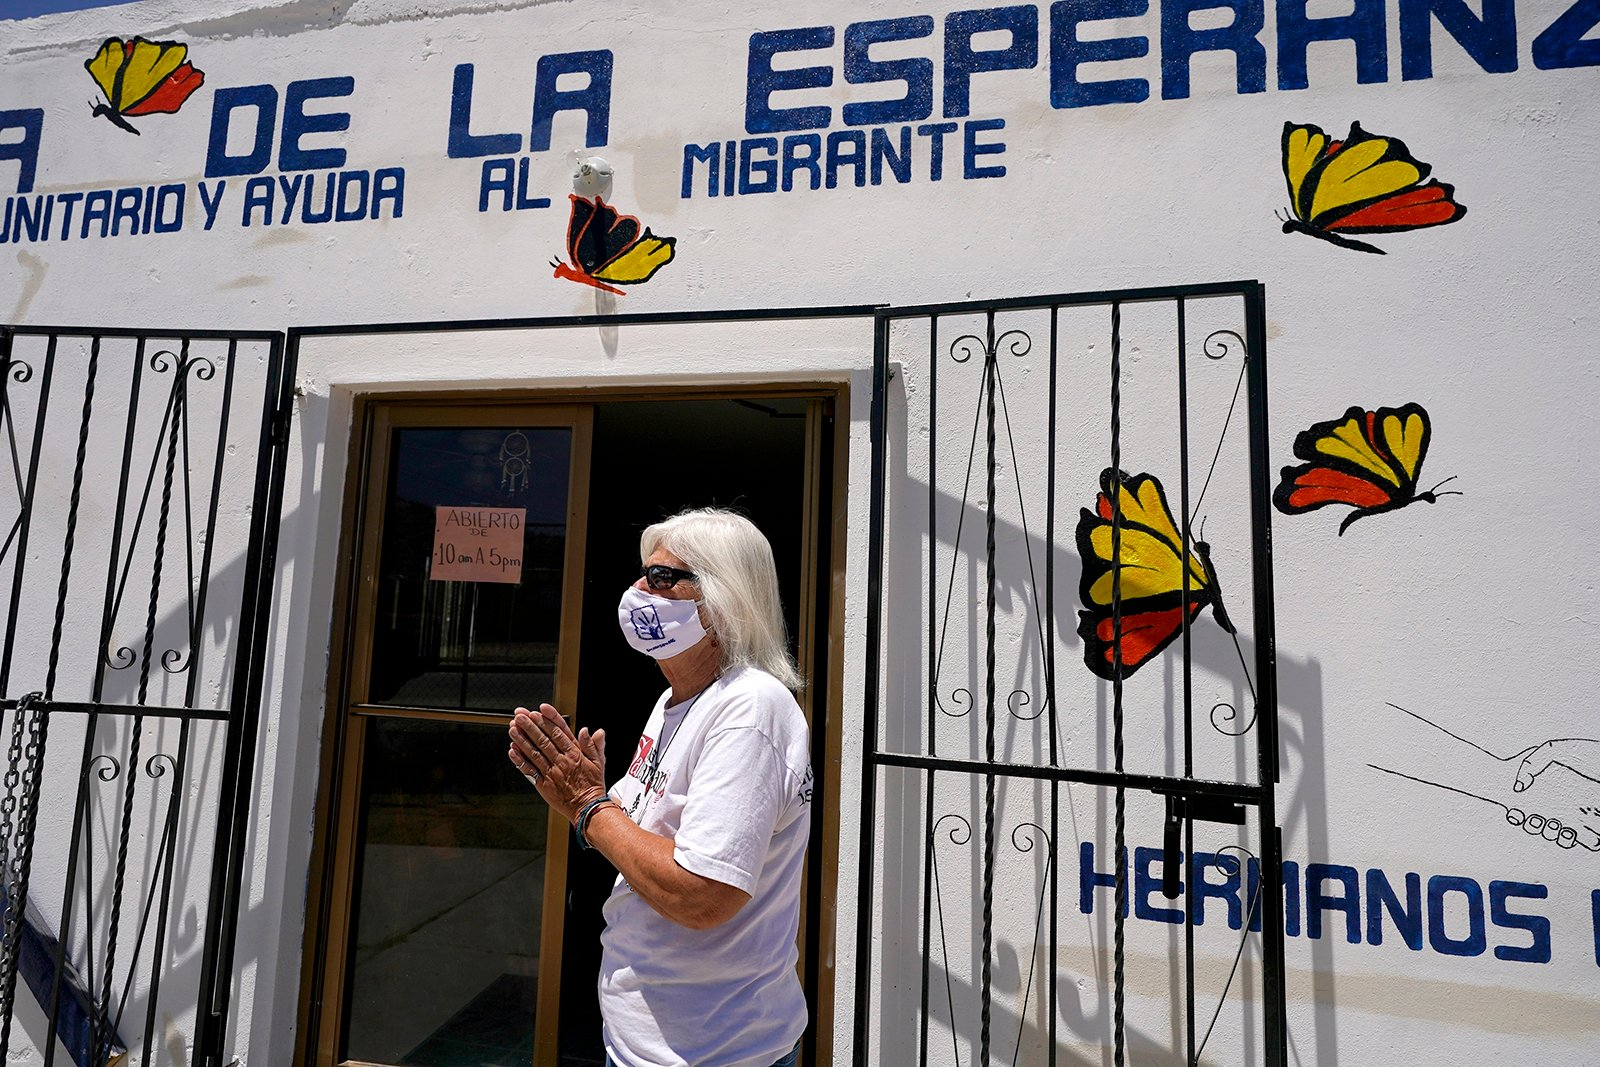 """Gail Kocourek, of the Tucson Samaritans volunteer group, pauses as she speaks with migrants in front of Casa de la Esperanza, a new migrant help center just south of the border in the Mexican town of Sasabe on Wednesday, May 19, 2021. """"I don't think anyone deserves to die for trying to make a better life for their family,"""" Kocourek says. (AP Photo/Ross D. Franklin)"""